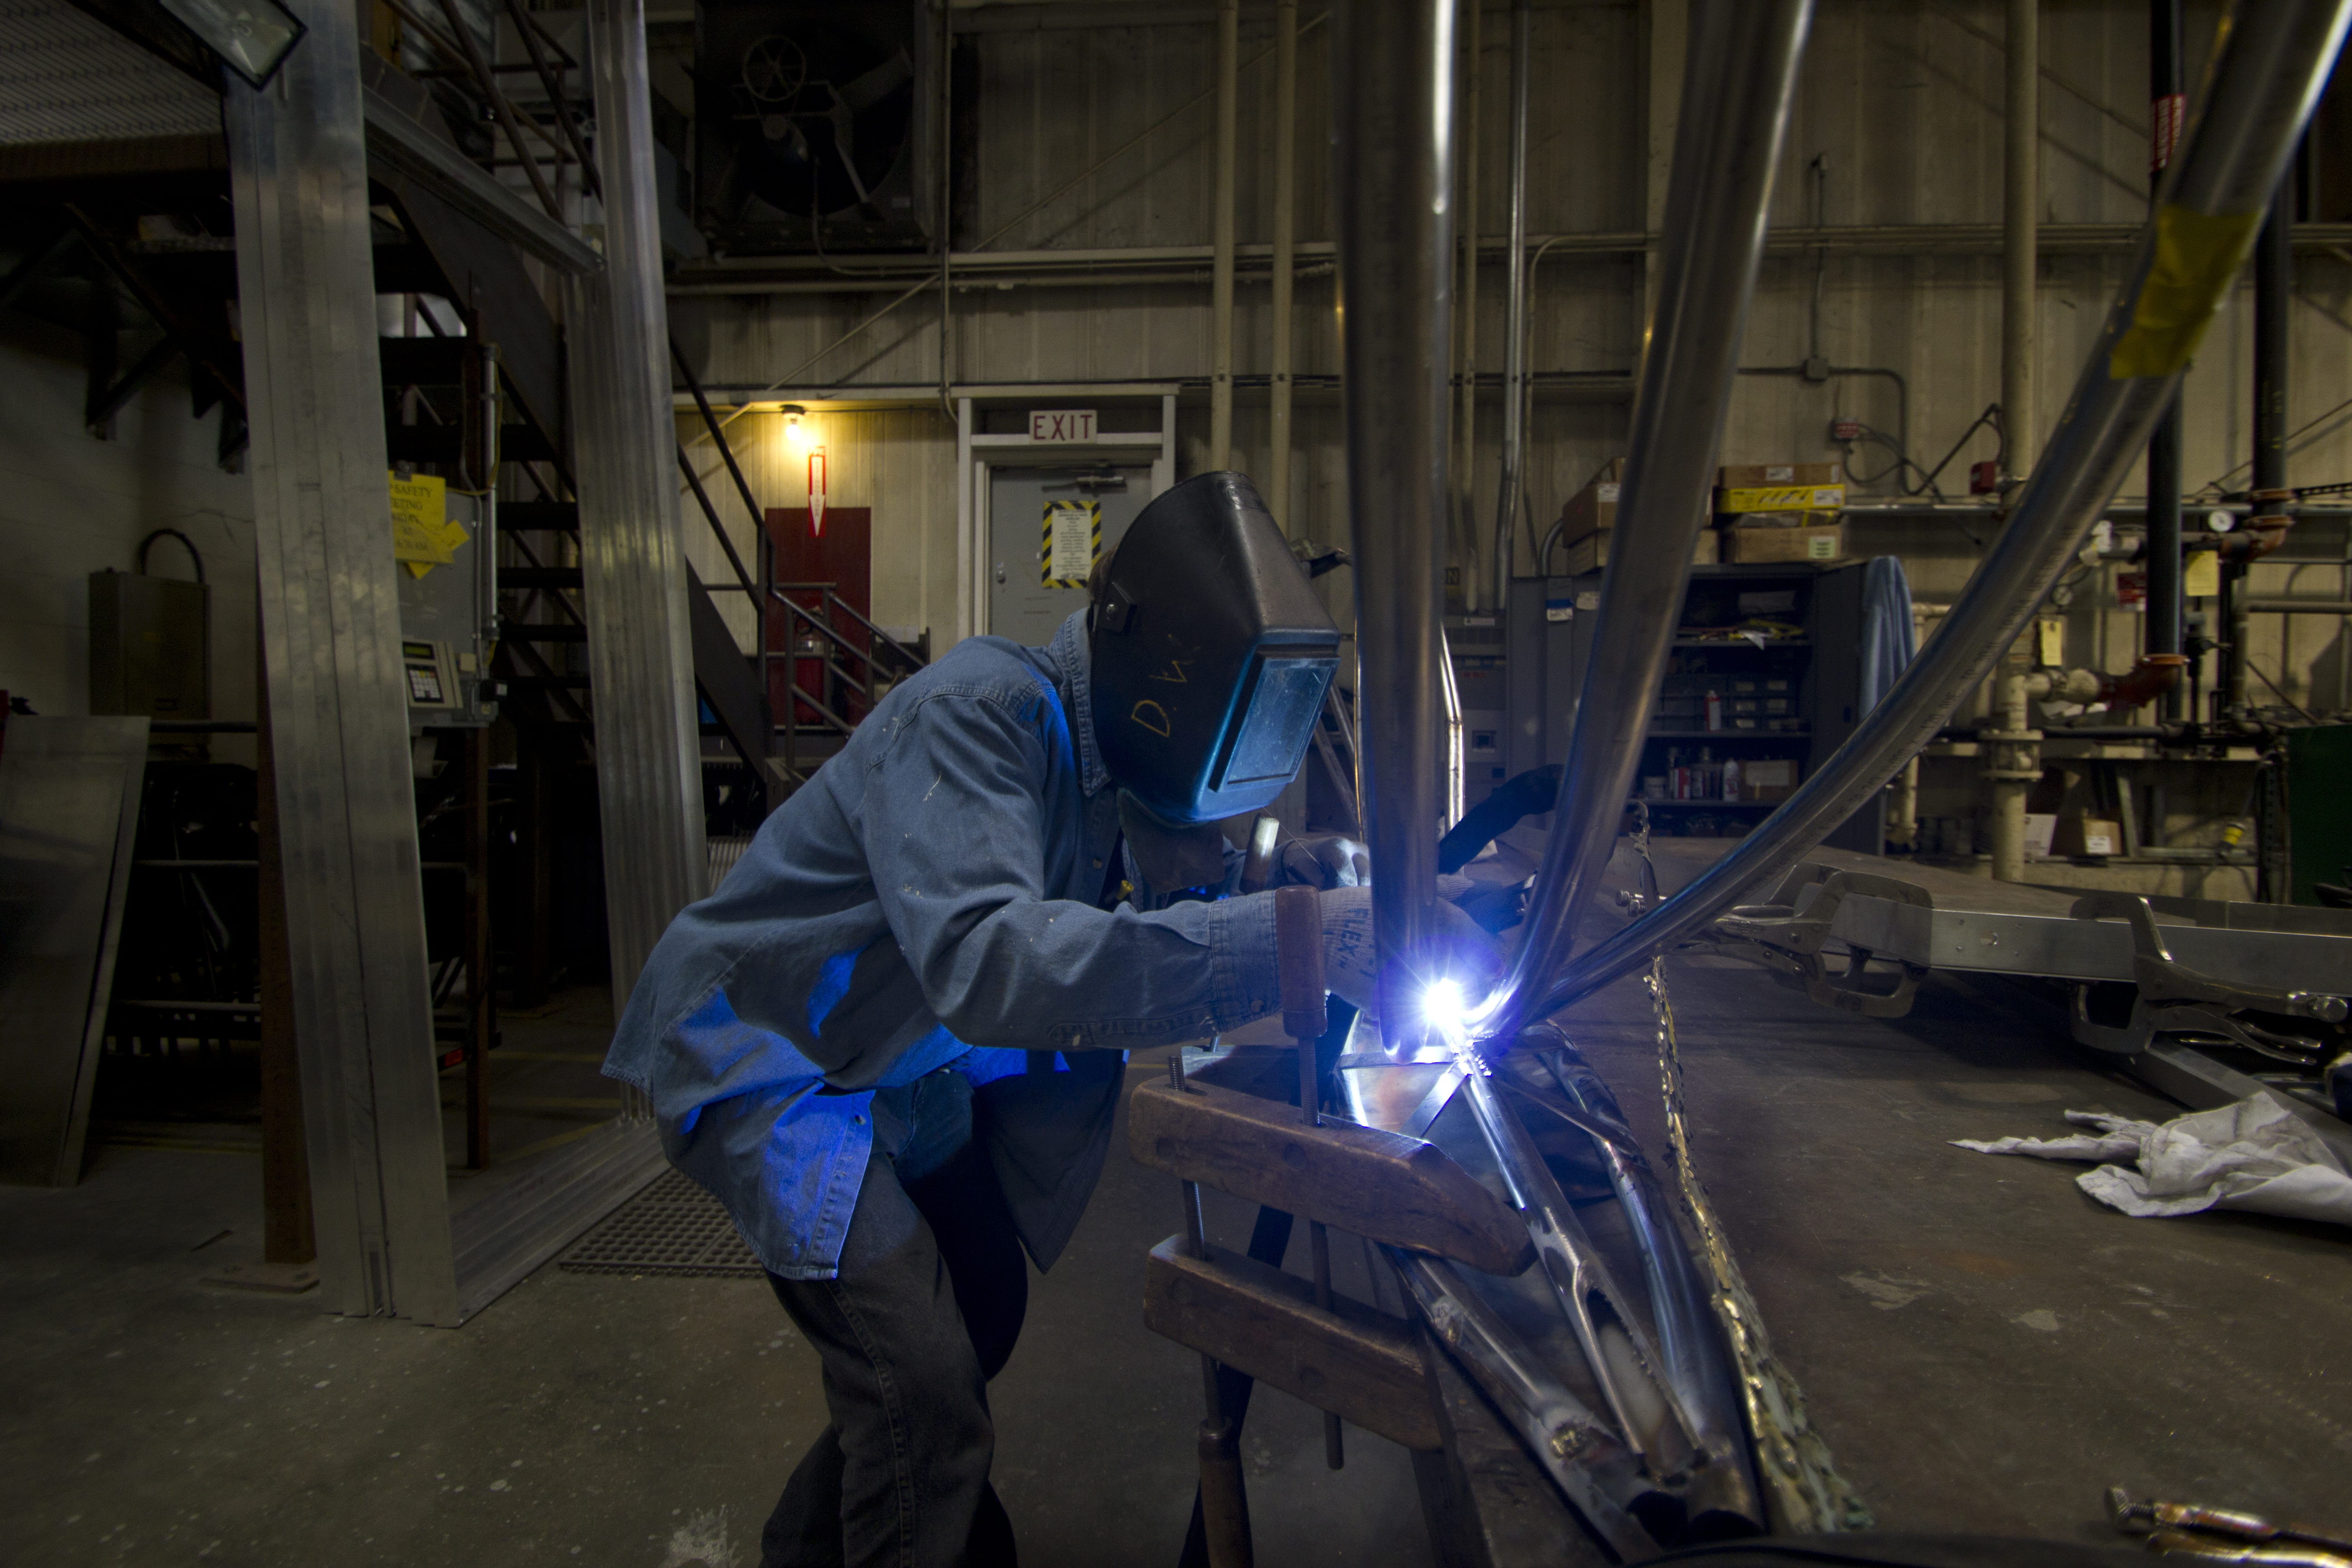 Zahner welds the new stainless steel armature for the Jac T. Bowen sculpture.